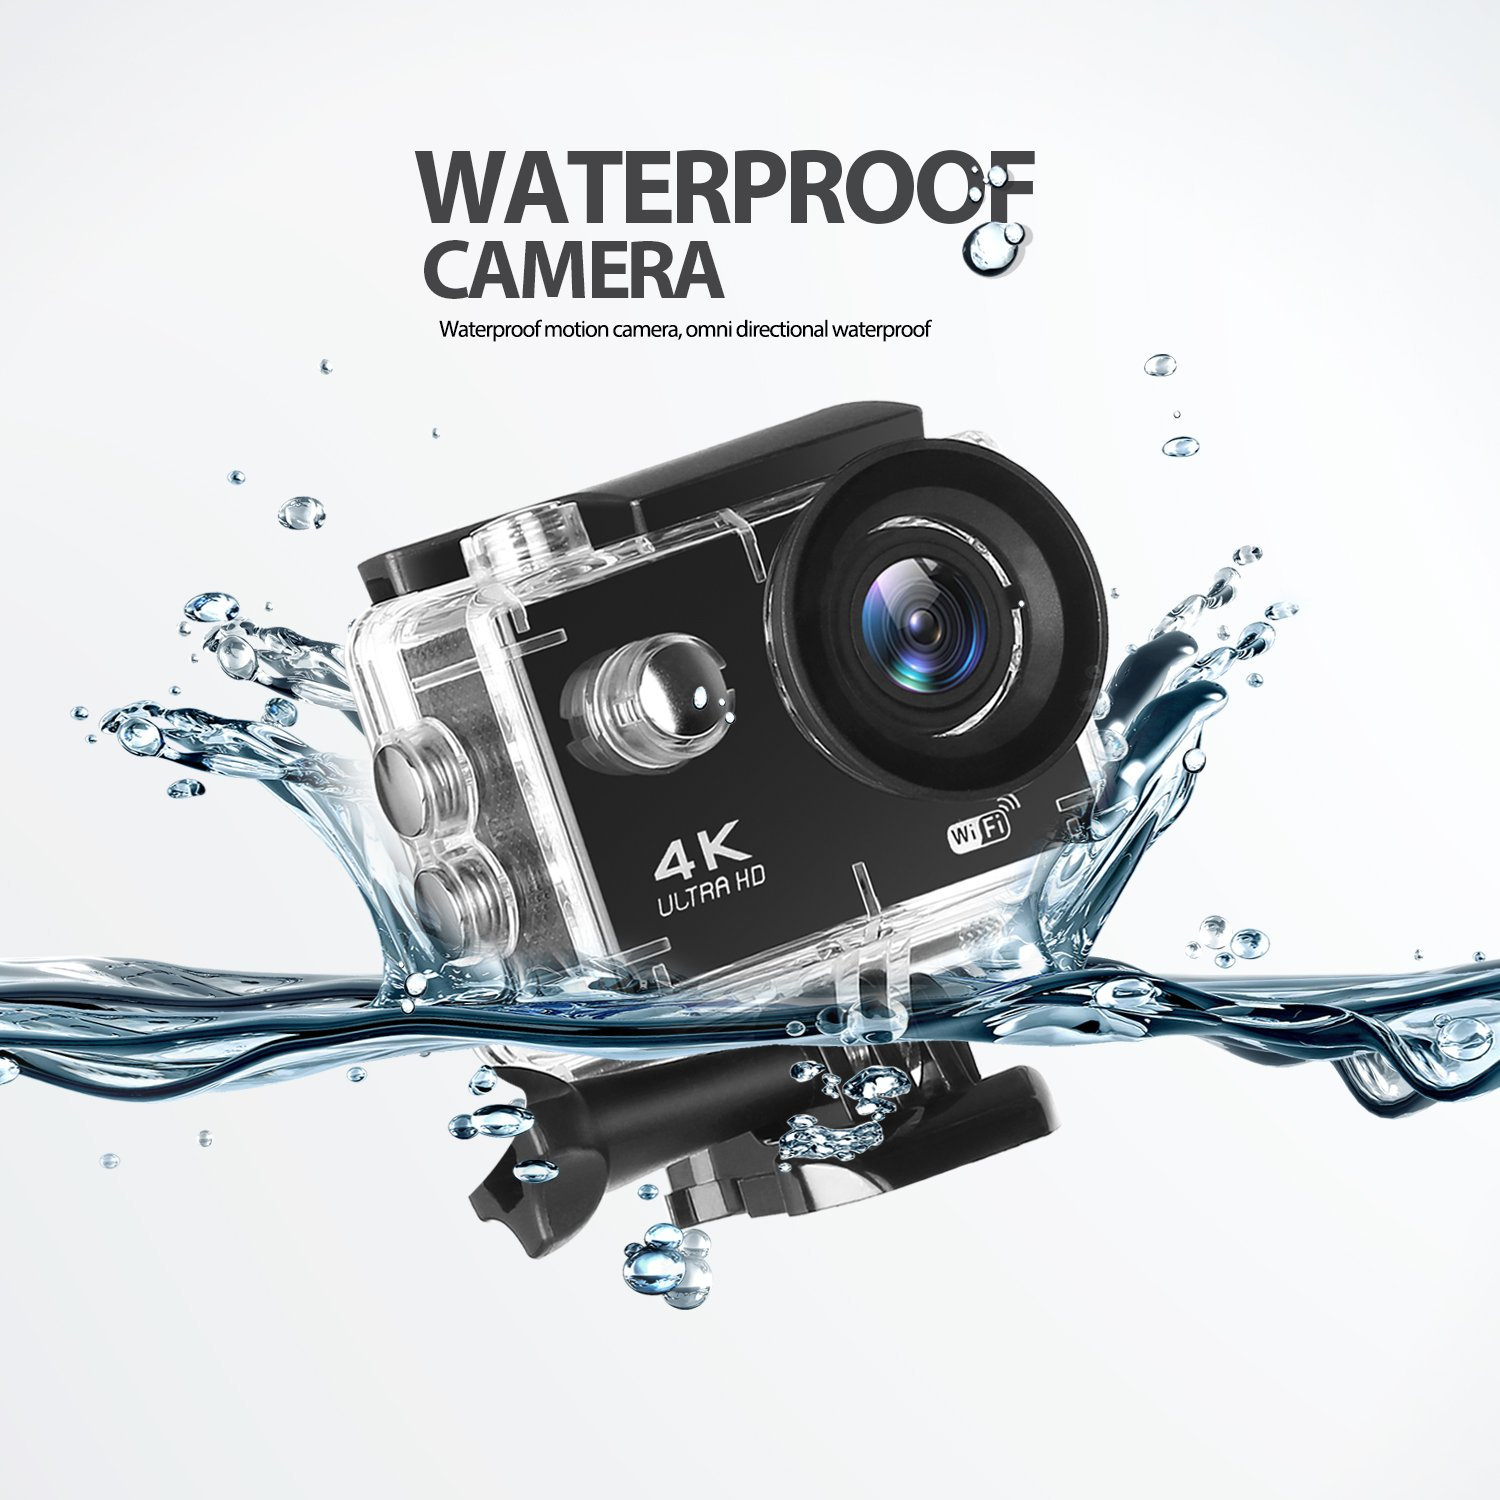 Action Camera,Auto Beyond 4K WIFI Anti-Shake Sports Action Camera Ultra HD 16MP/ 2 Inch LCD Screen/ 30m Underwater/ 170°Wide-Angle and EIS Sports Action Camera/ 2 Rechargeable Batteries/ Mounting Accessory Kits/ Portable Case-(Black) autobeyond